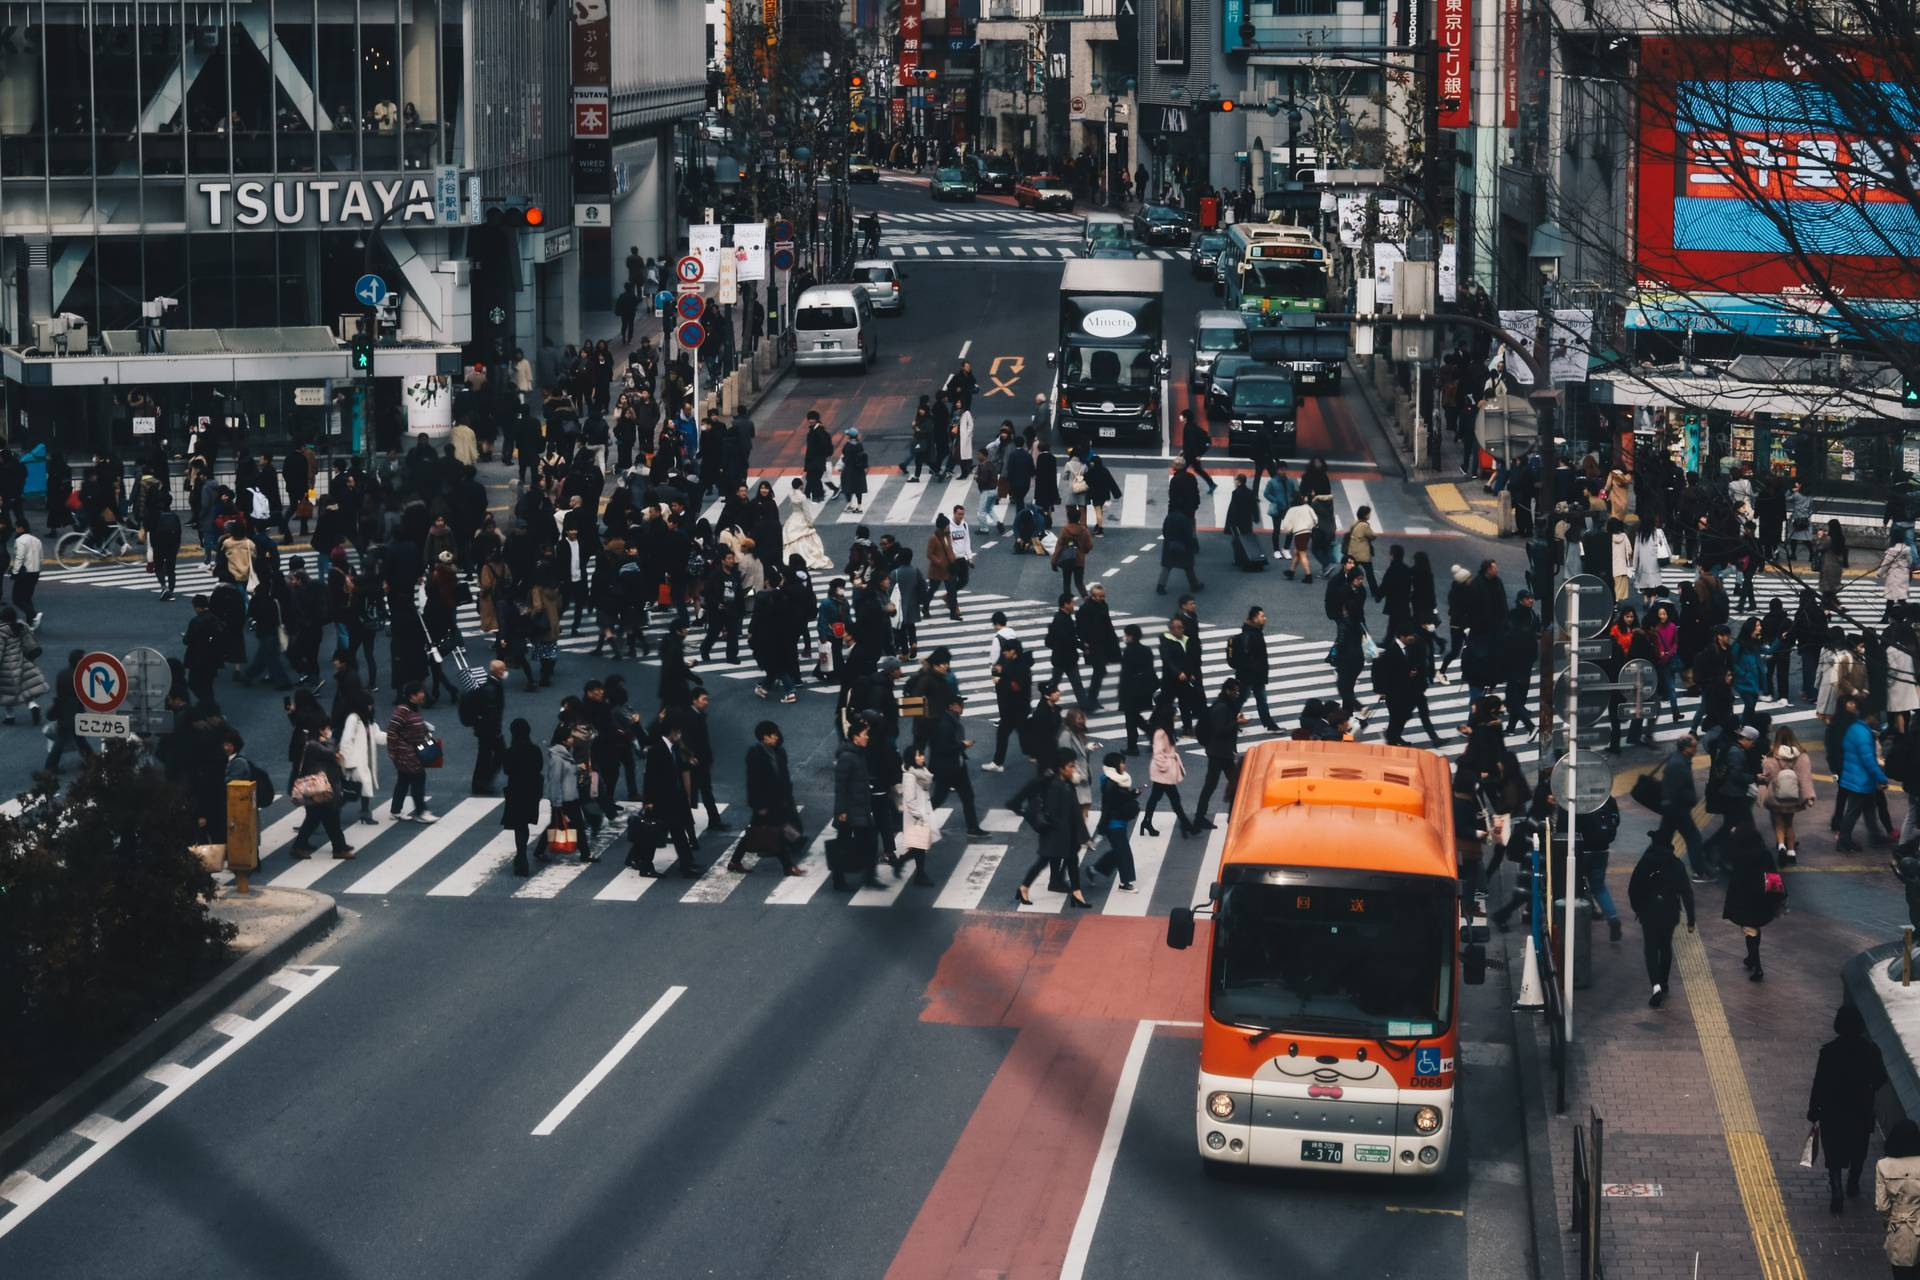 Photo of the Shibuya crossing